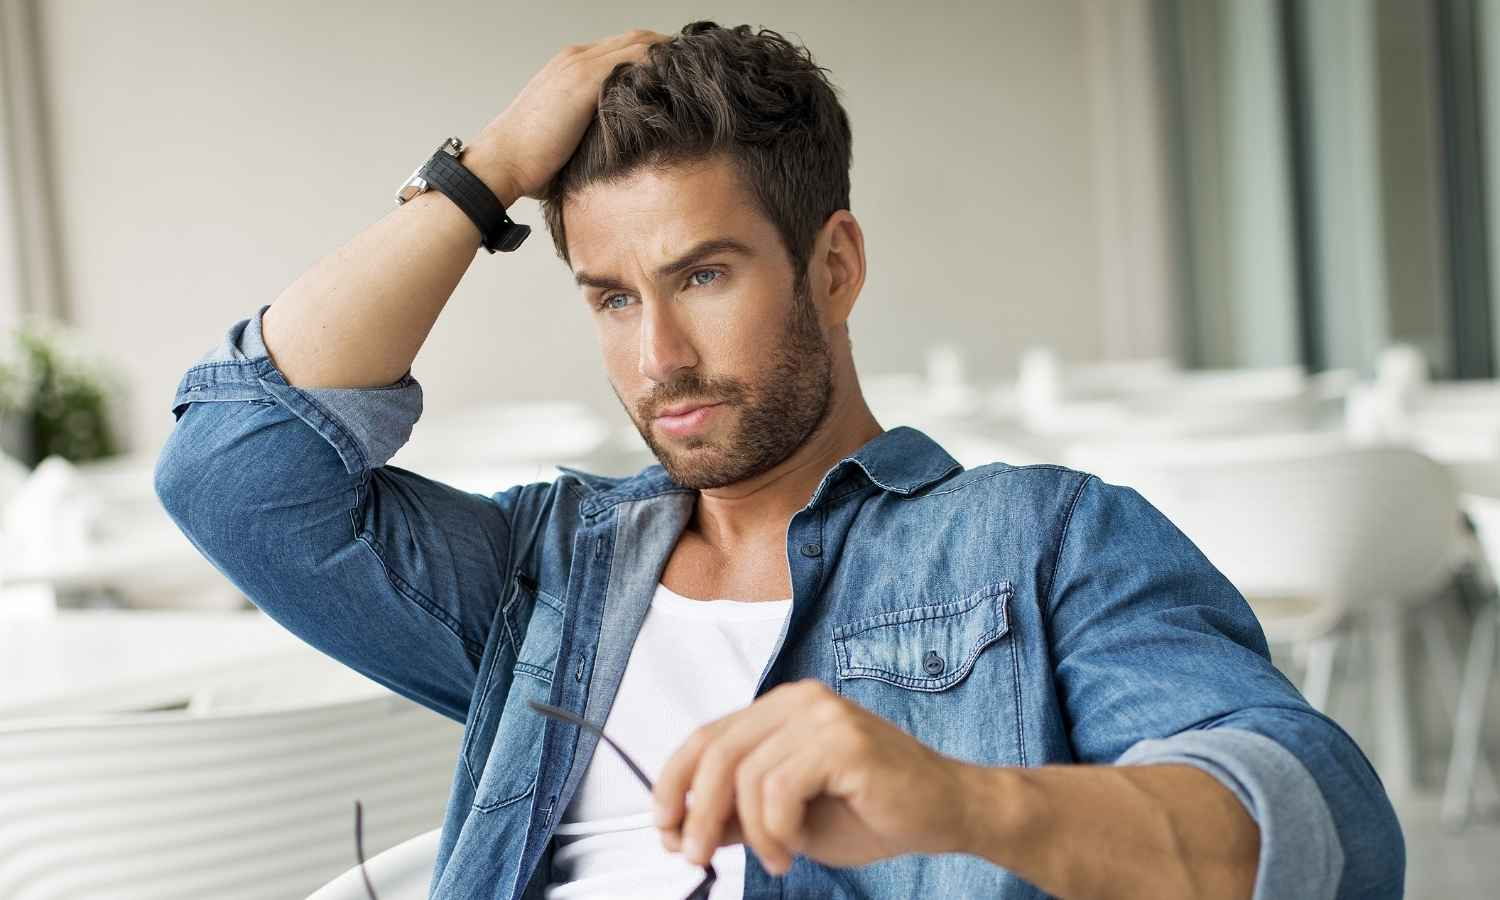 How to Grow Your Hair Faster (8 Tips for Men)